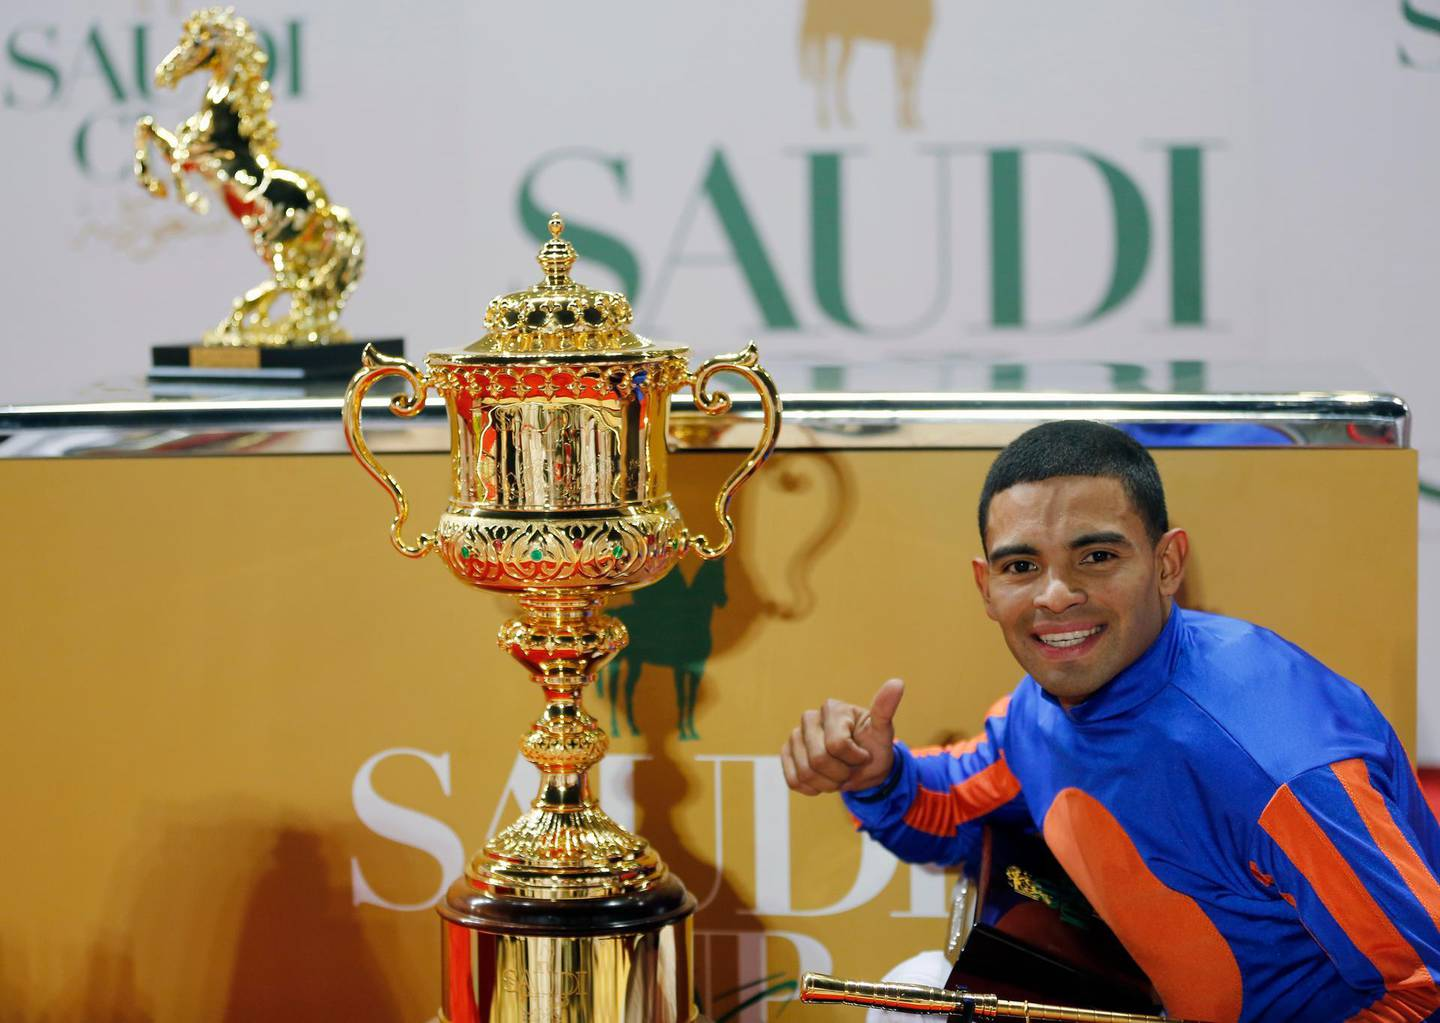 Jockey Luis Saez celebrates with the trophy after winning the final race of the $20 million, the Saudi Cup, at King Abdul Aziz race track in Riyadh, Saudi Arabia, Saturday, Feb. 29, 2020. The race is considered the world's richest horse race which attracted some of the world's best male and female jockeys. (AP Photo/Amr Nabil)